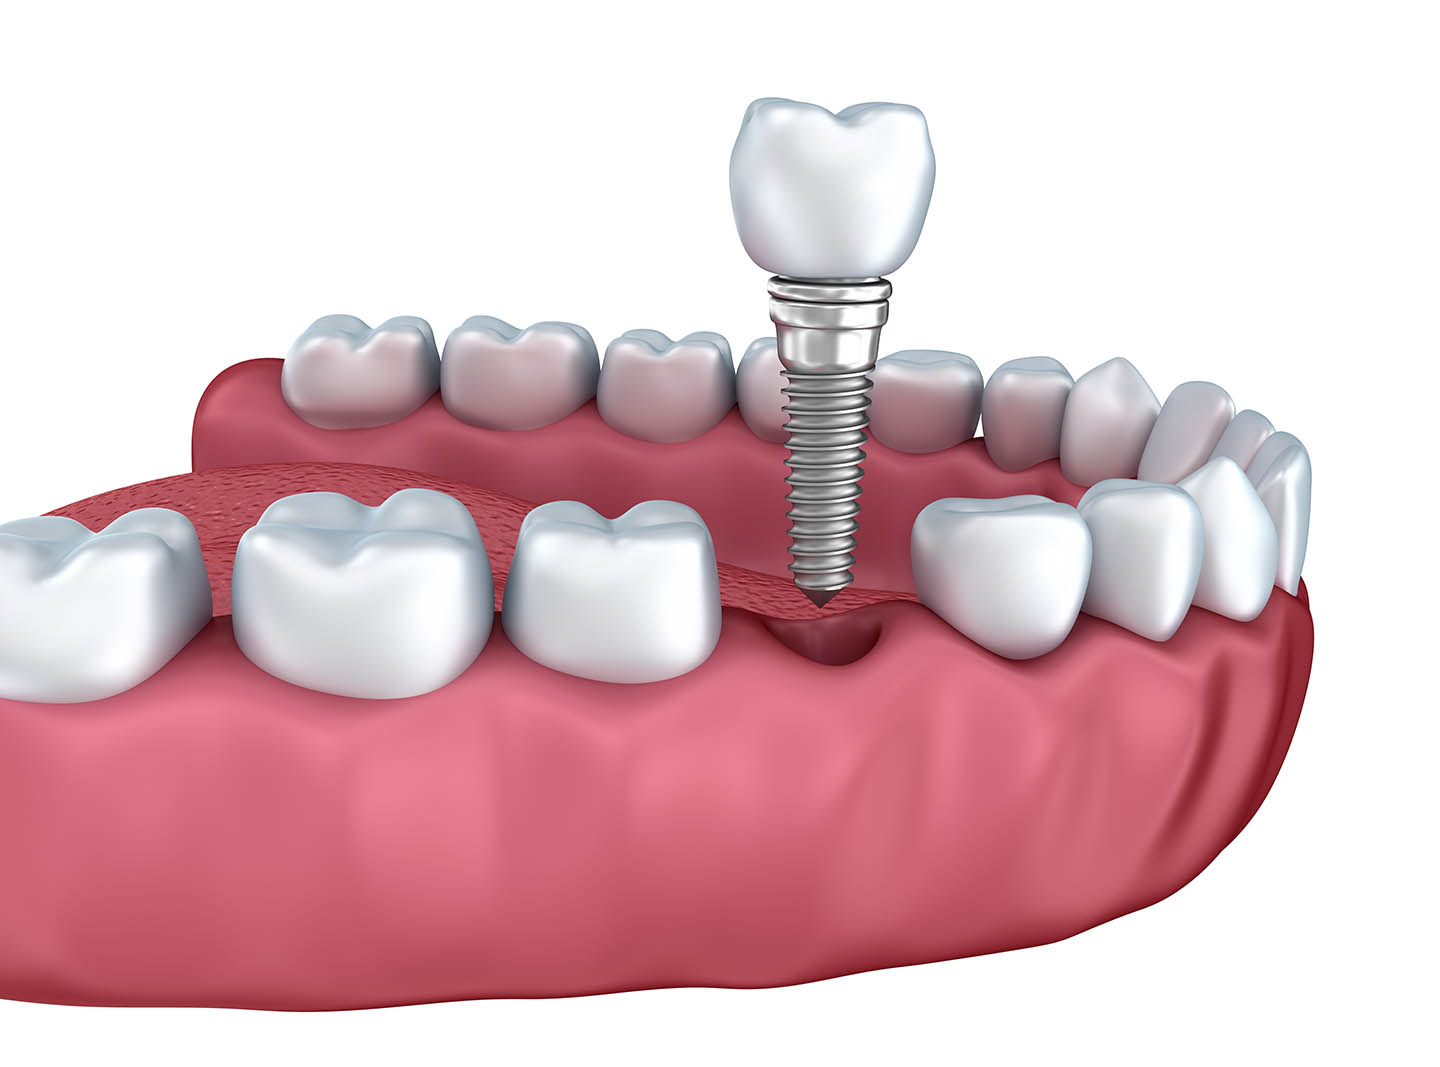 3d rendering of dental implant